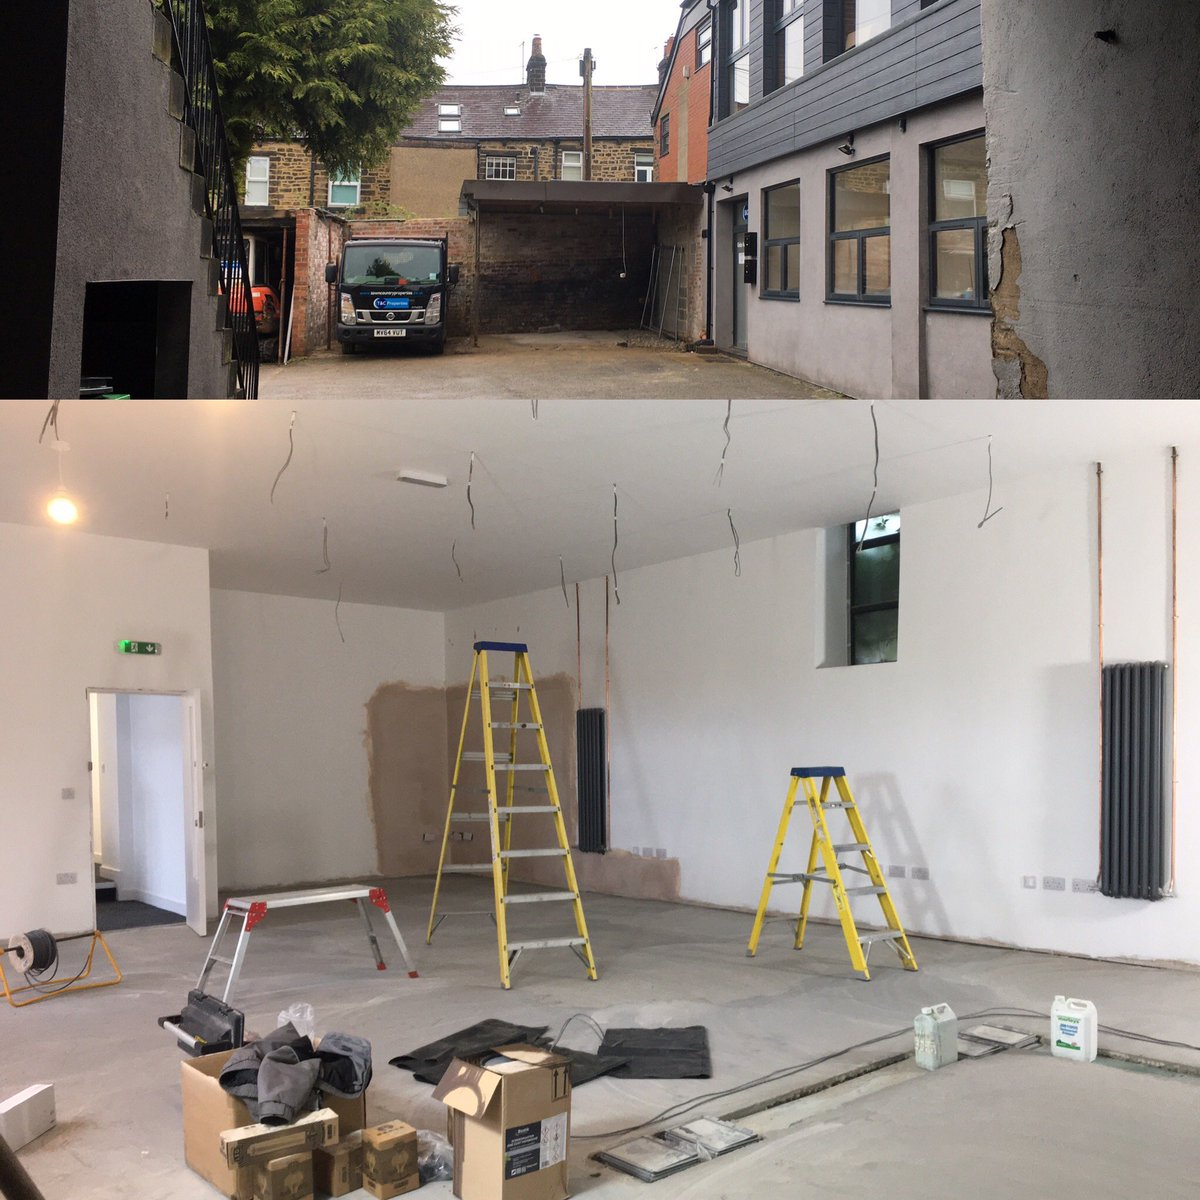 New office space coming together nicely. Two weeks to go...